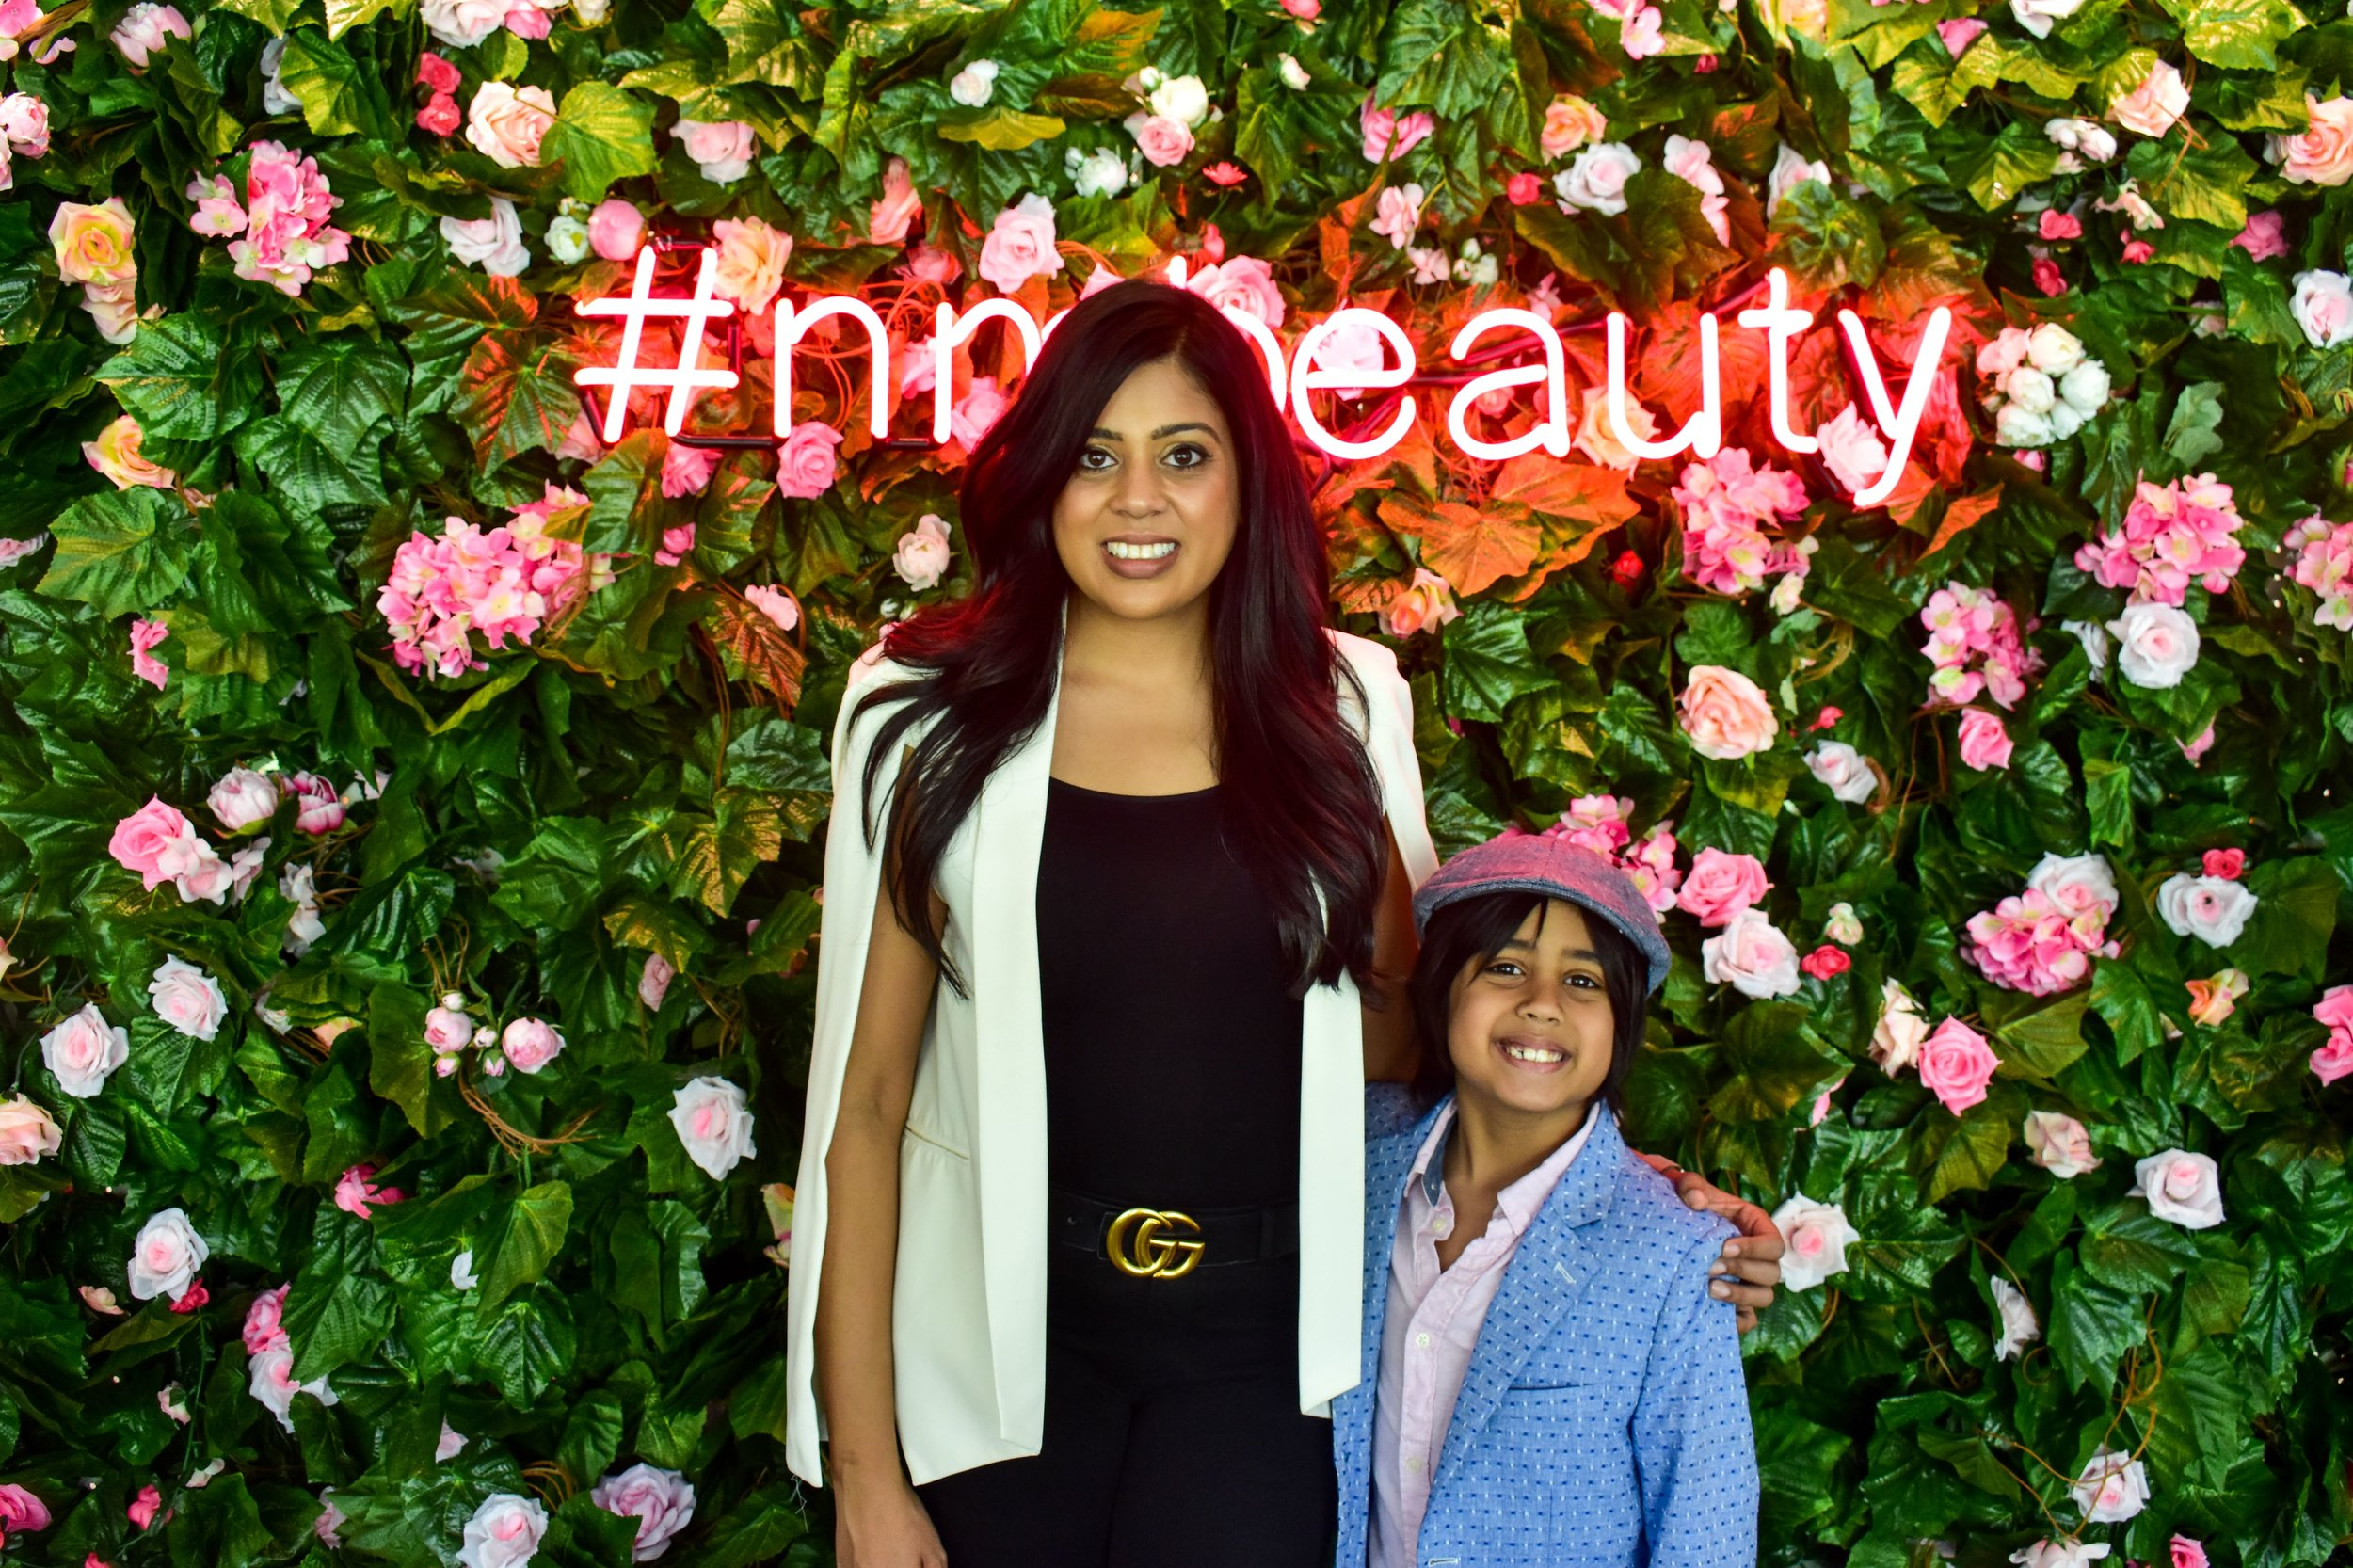 Make Your Life Sweeter Events - Neiman Marcus Beauty Conclave